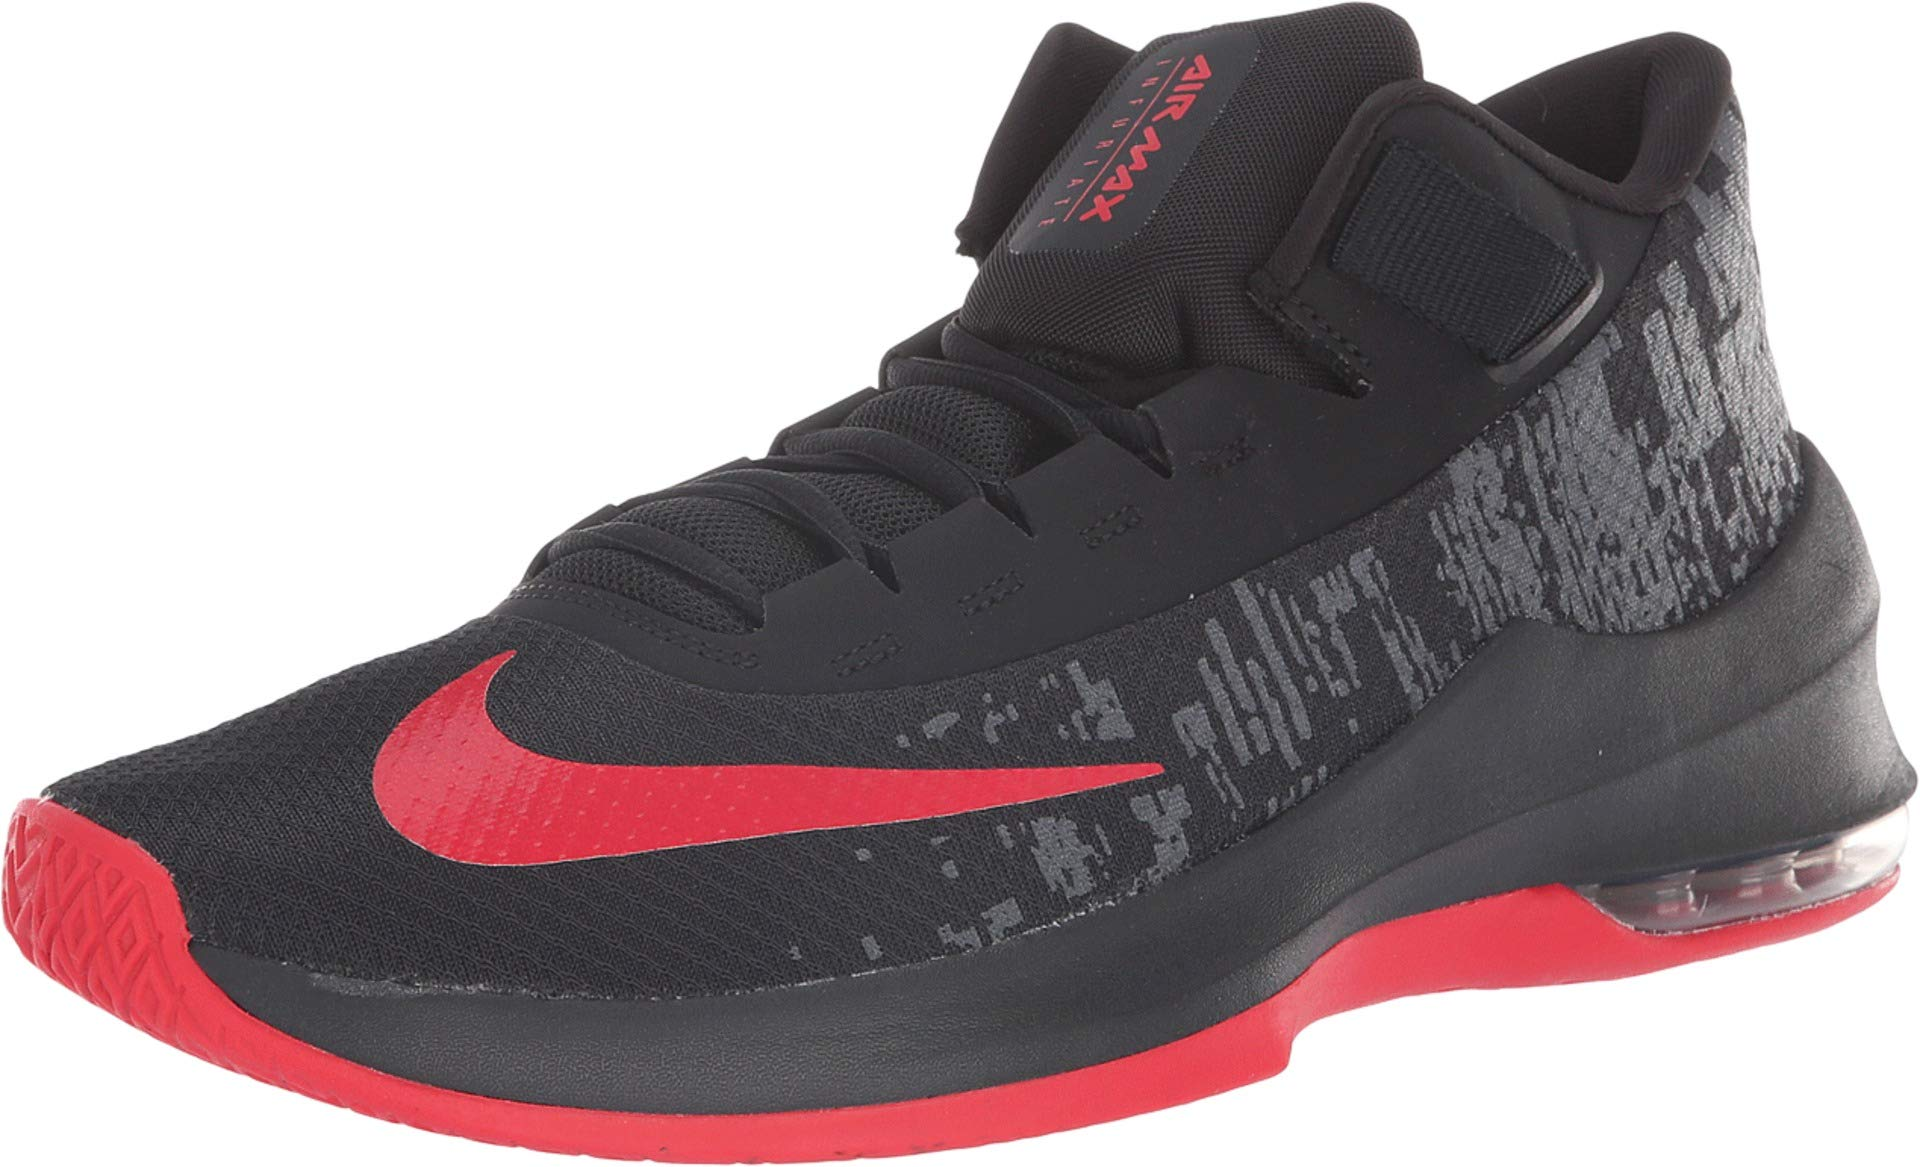 Nike Men's Air Max Infuriate 2 Mid Basketball Shoe Black/University Red/Anthracite Size 13 M US by Nike